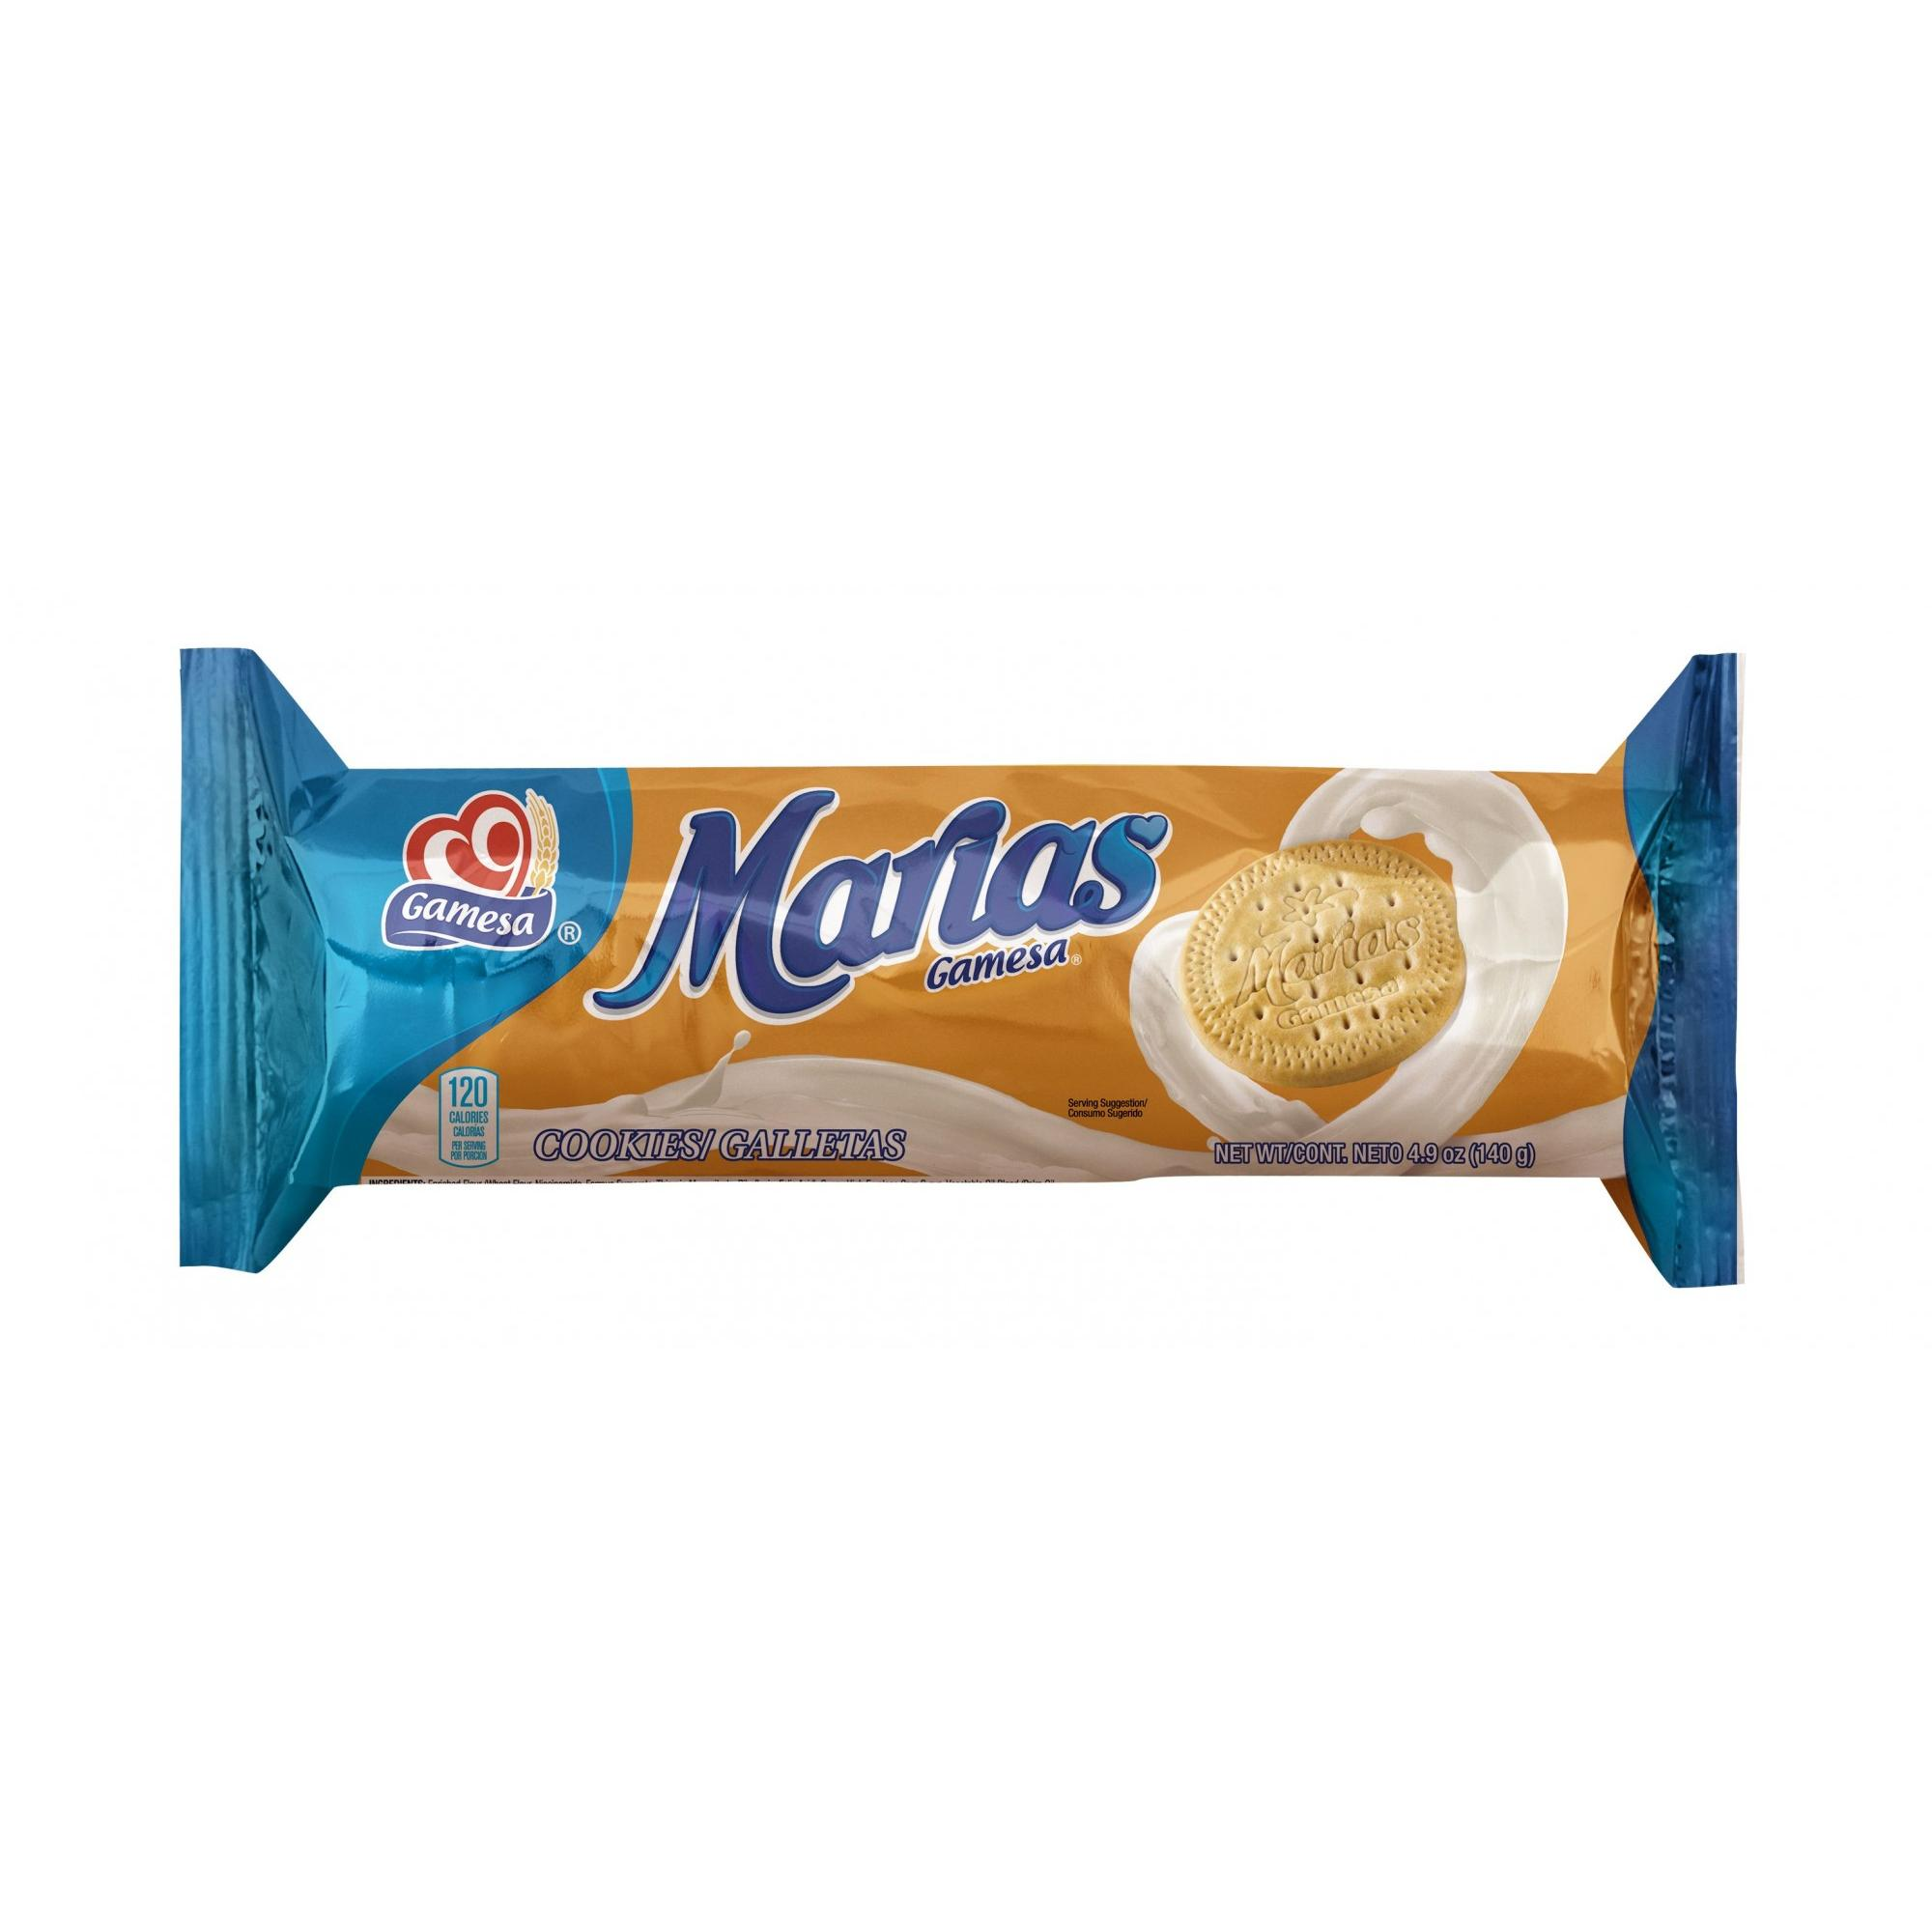 Gamesa Marias Cookies, 4.93 oz Pack